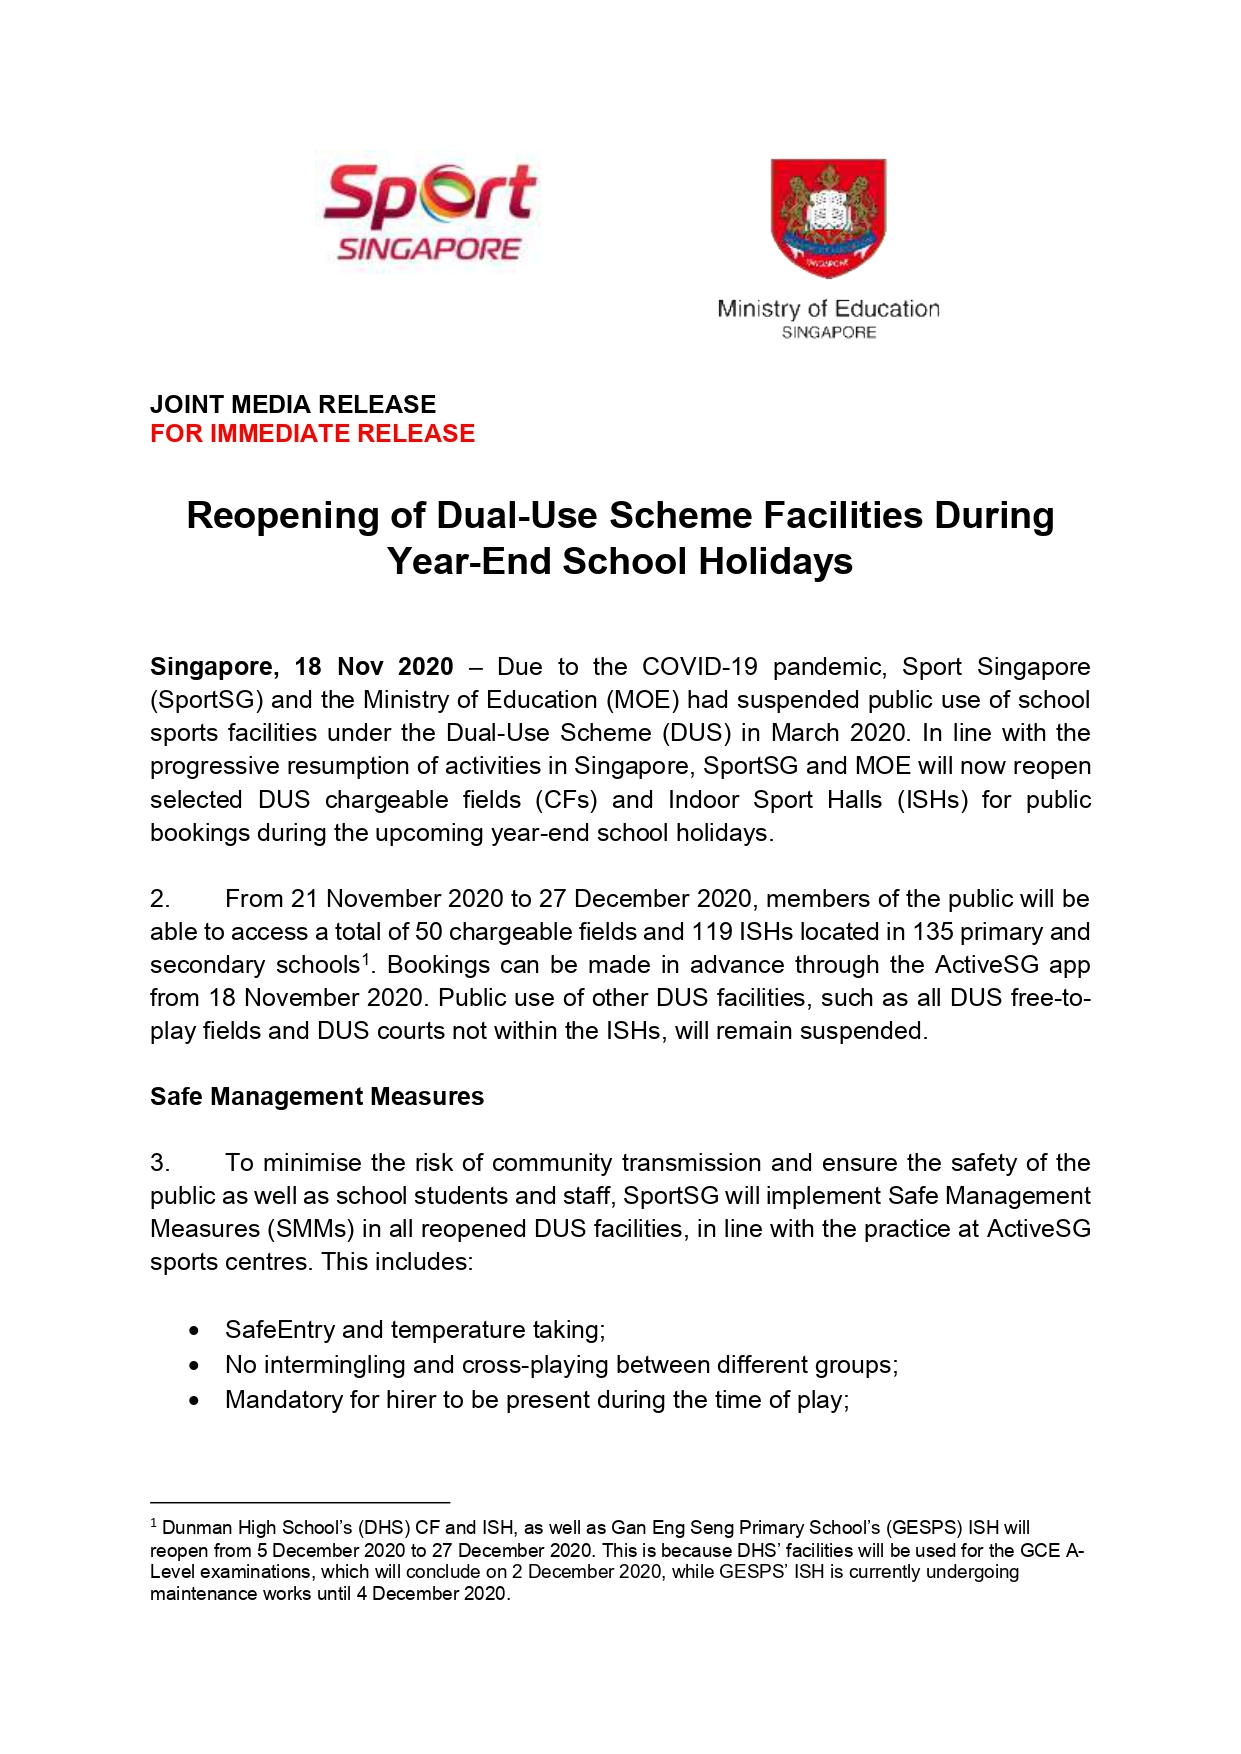 SportSG-MOE Media Release - Reopening of DUS Facilities copy_page-0001